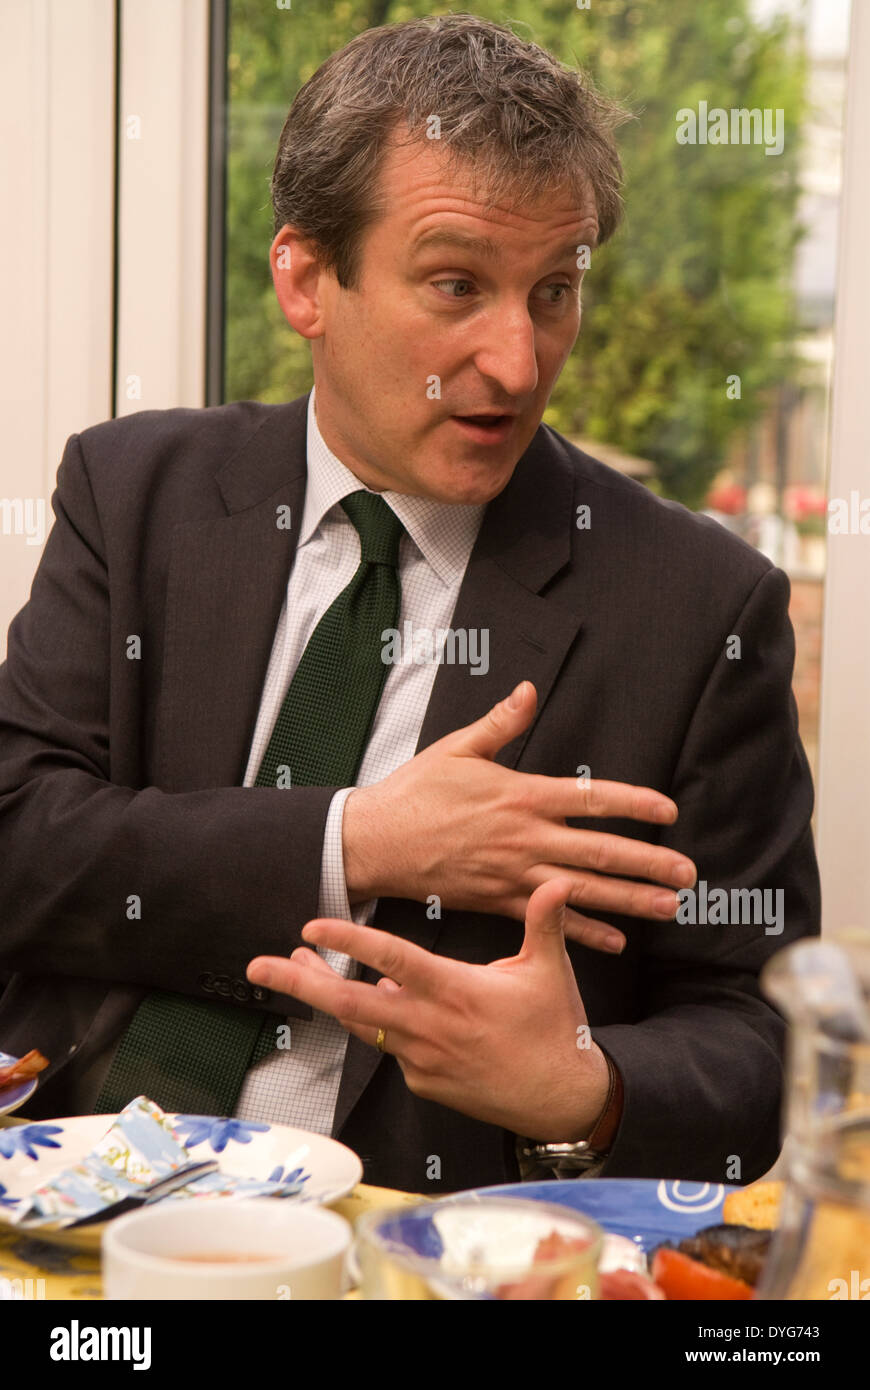 Damian Hinds, MP for East Hampshire, at a breakfast meeting with members of the National Farmers Union, Headley, Hampshire, UK. - Stock Image